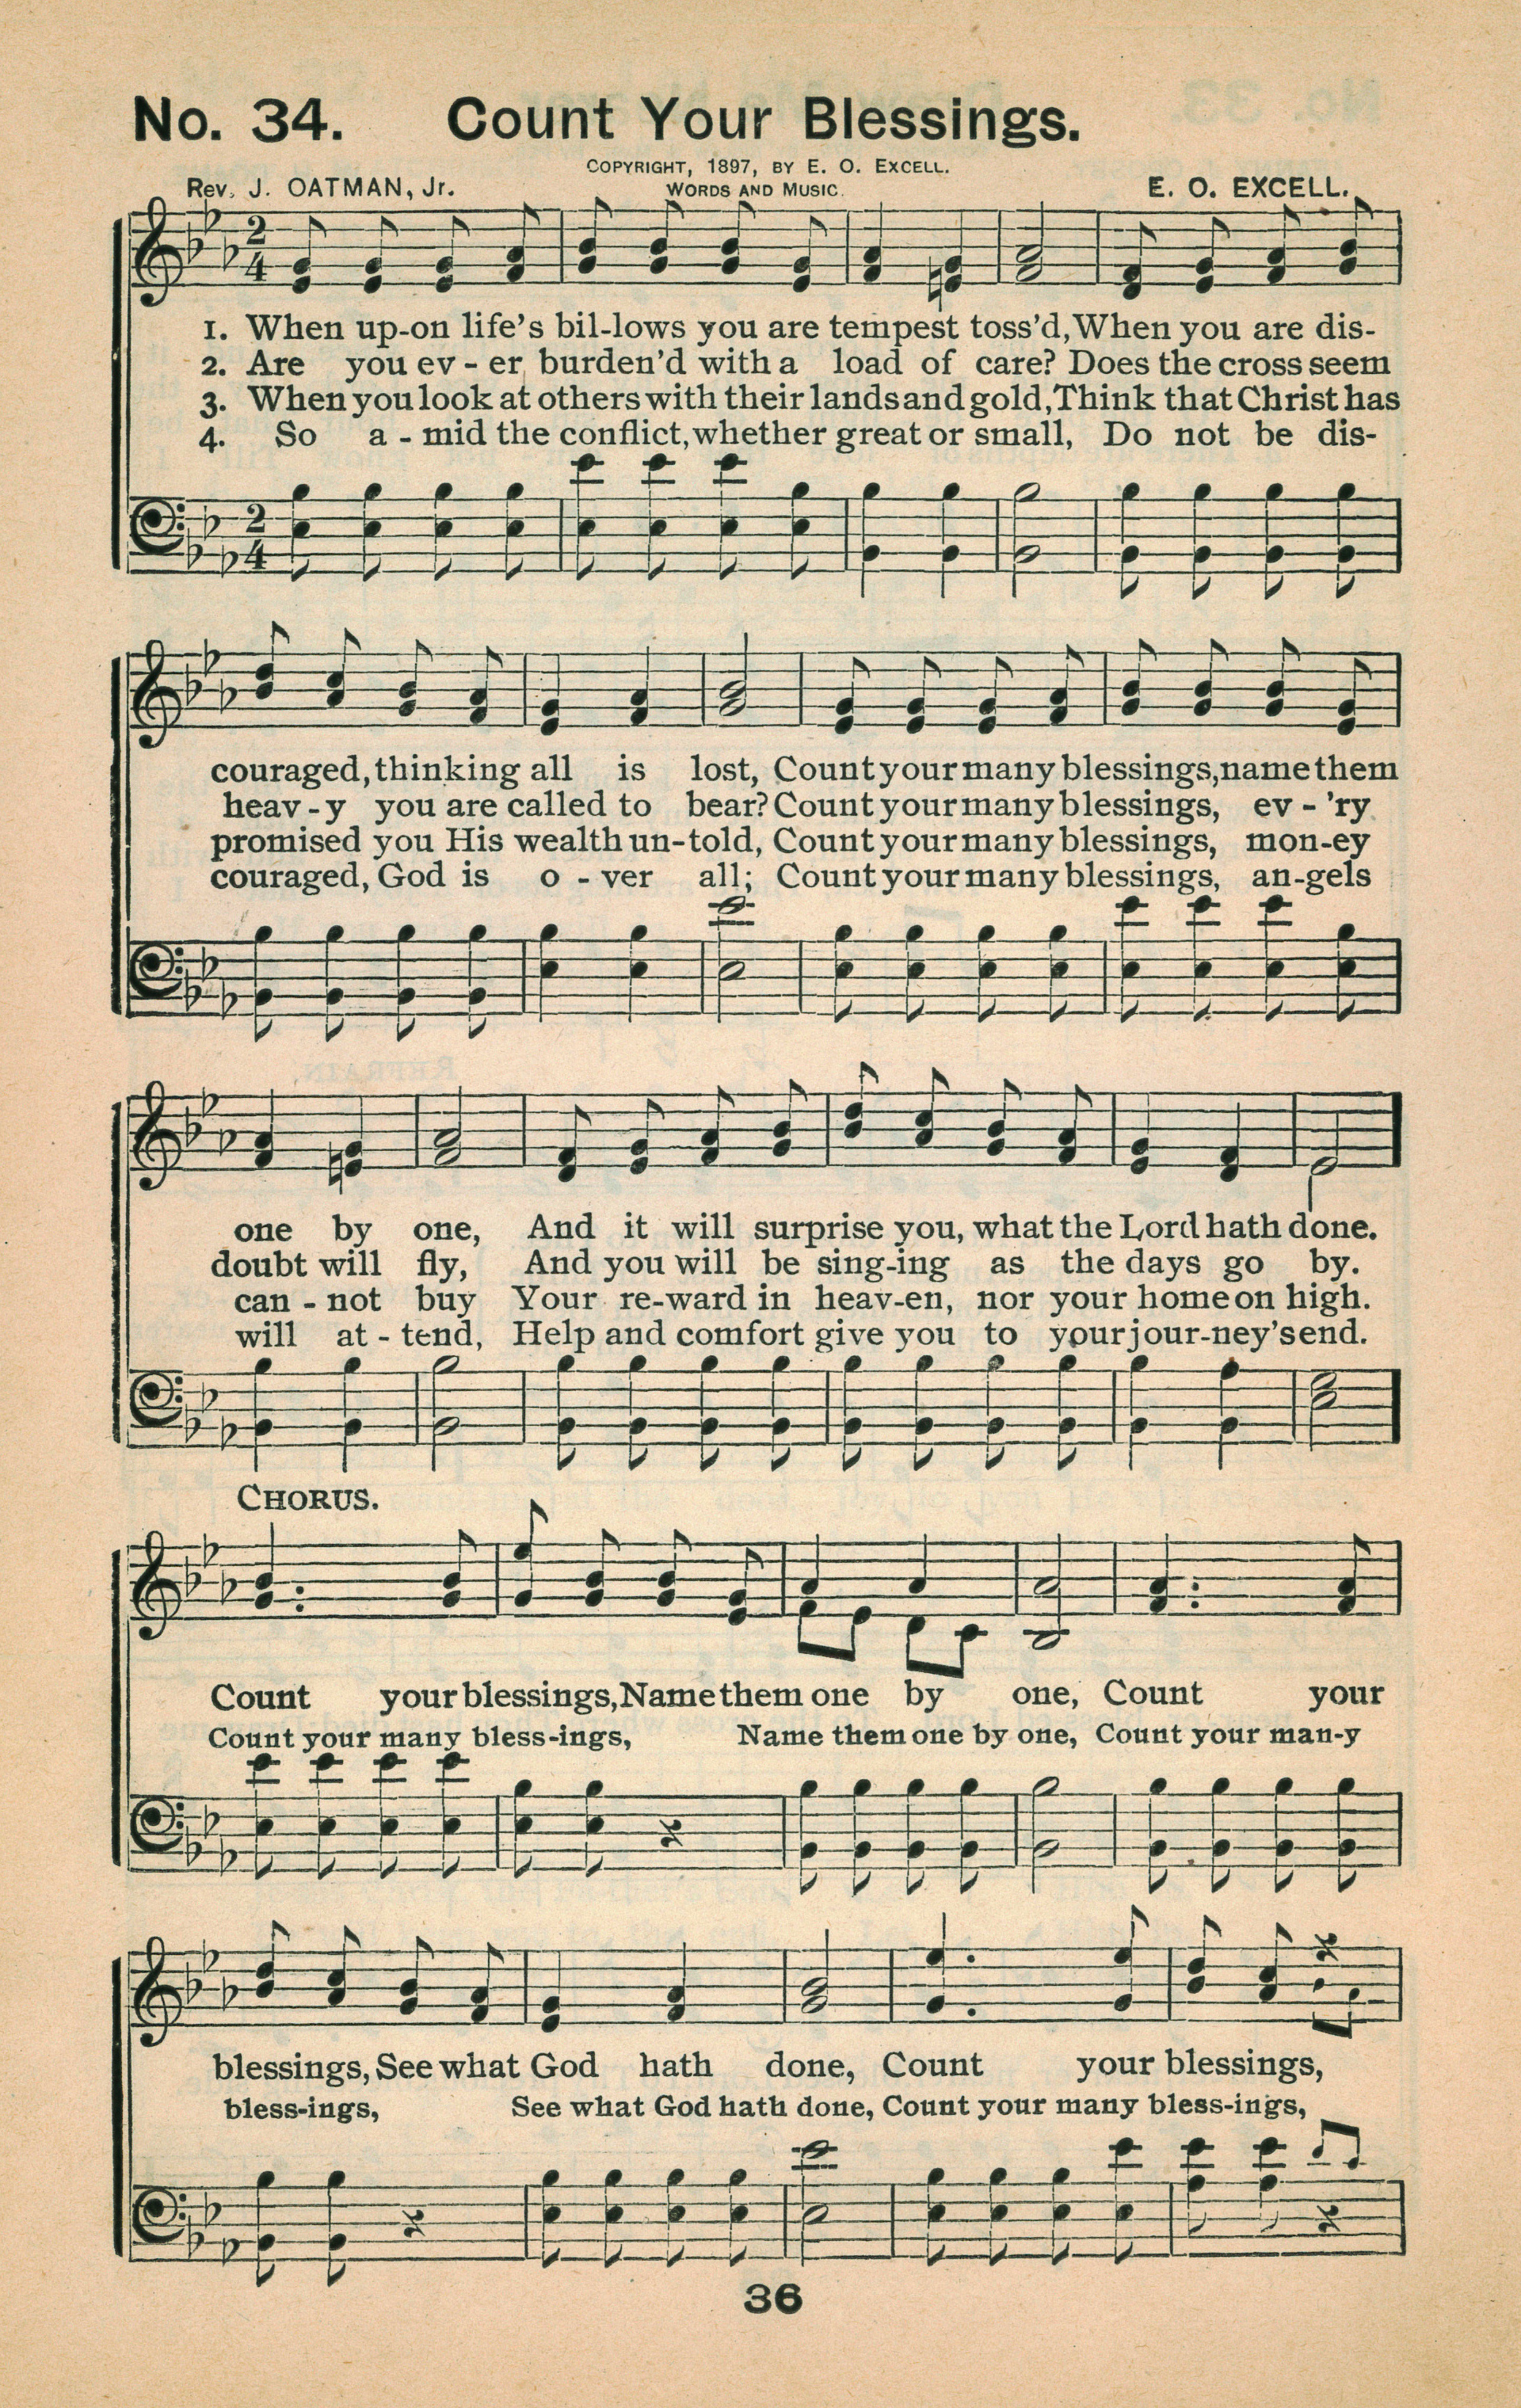 CountYourBlessings-SongsforYoungPeople-1897_001a.jpg